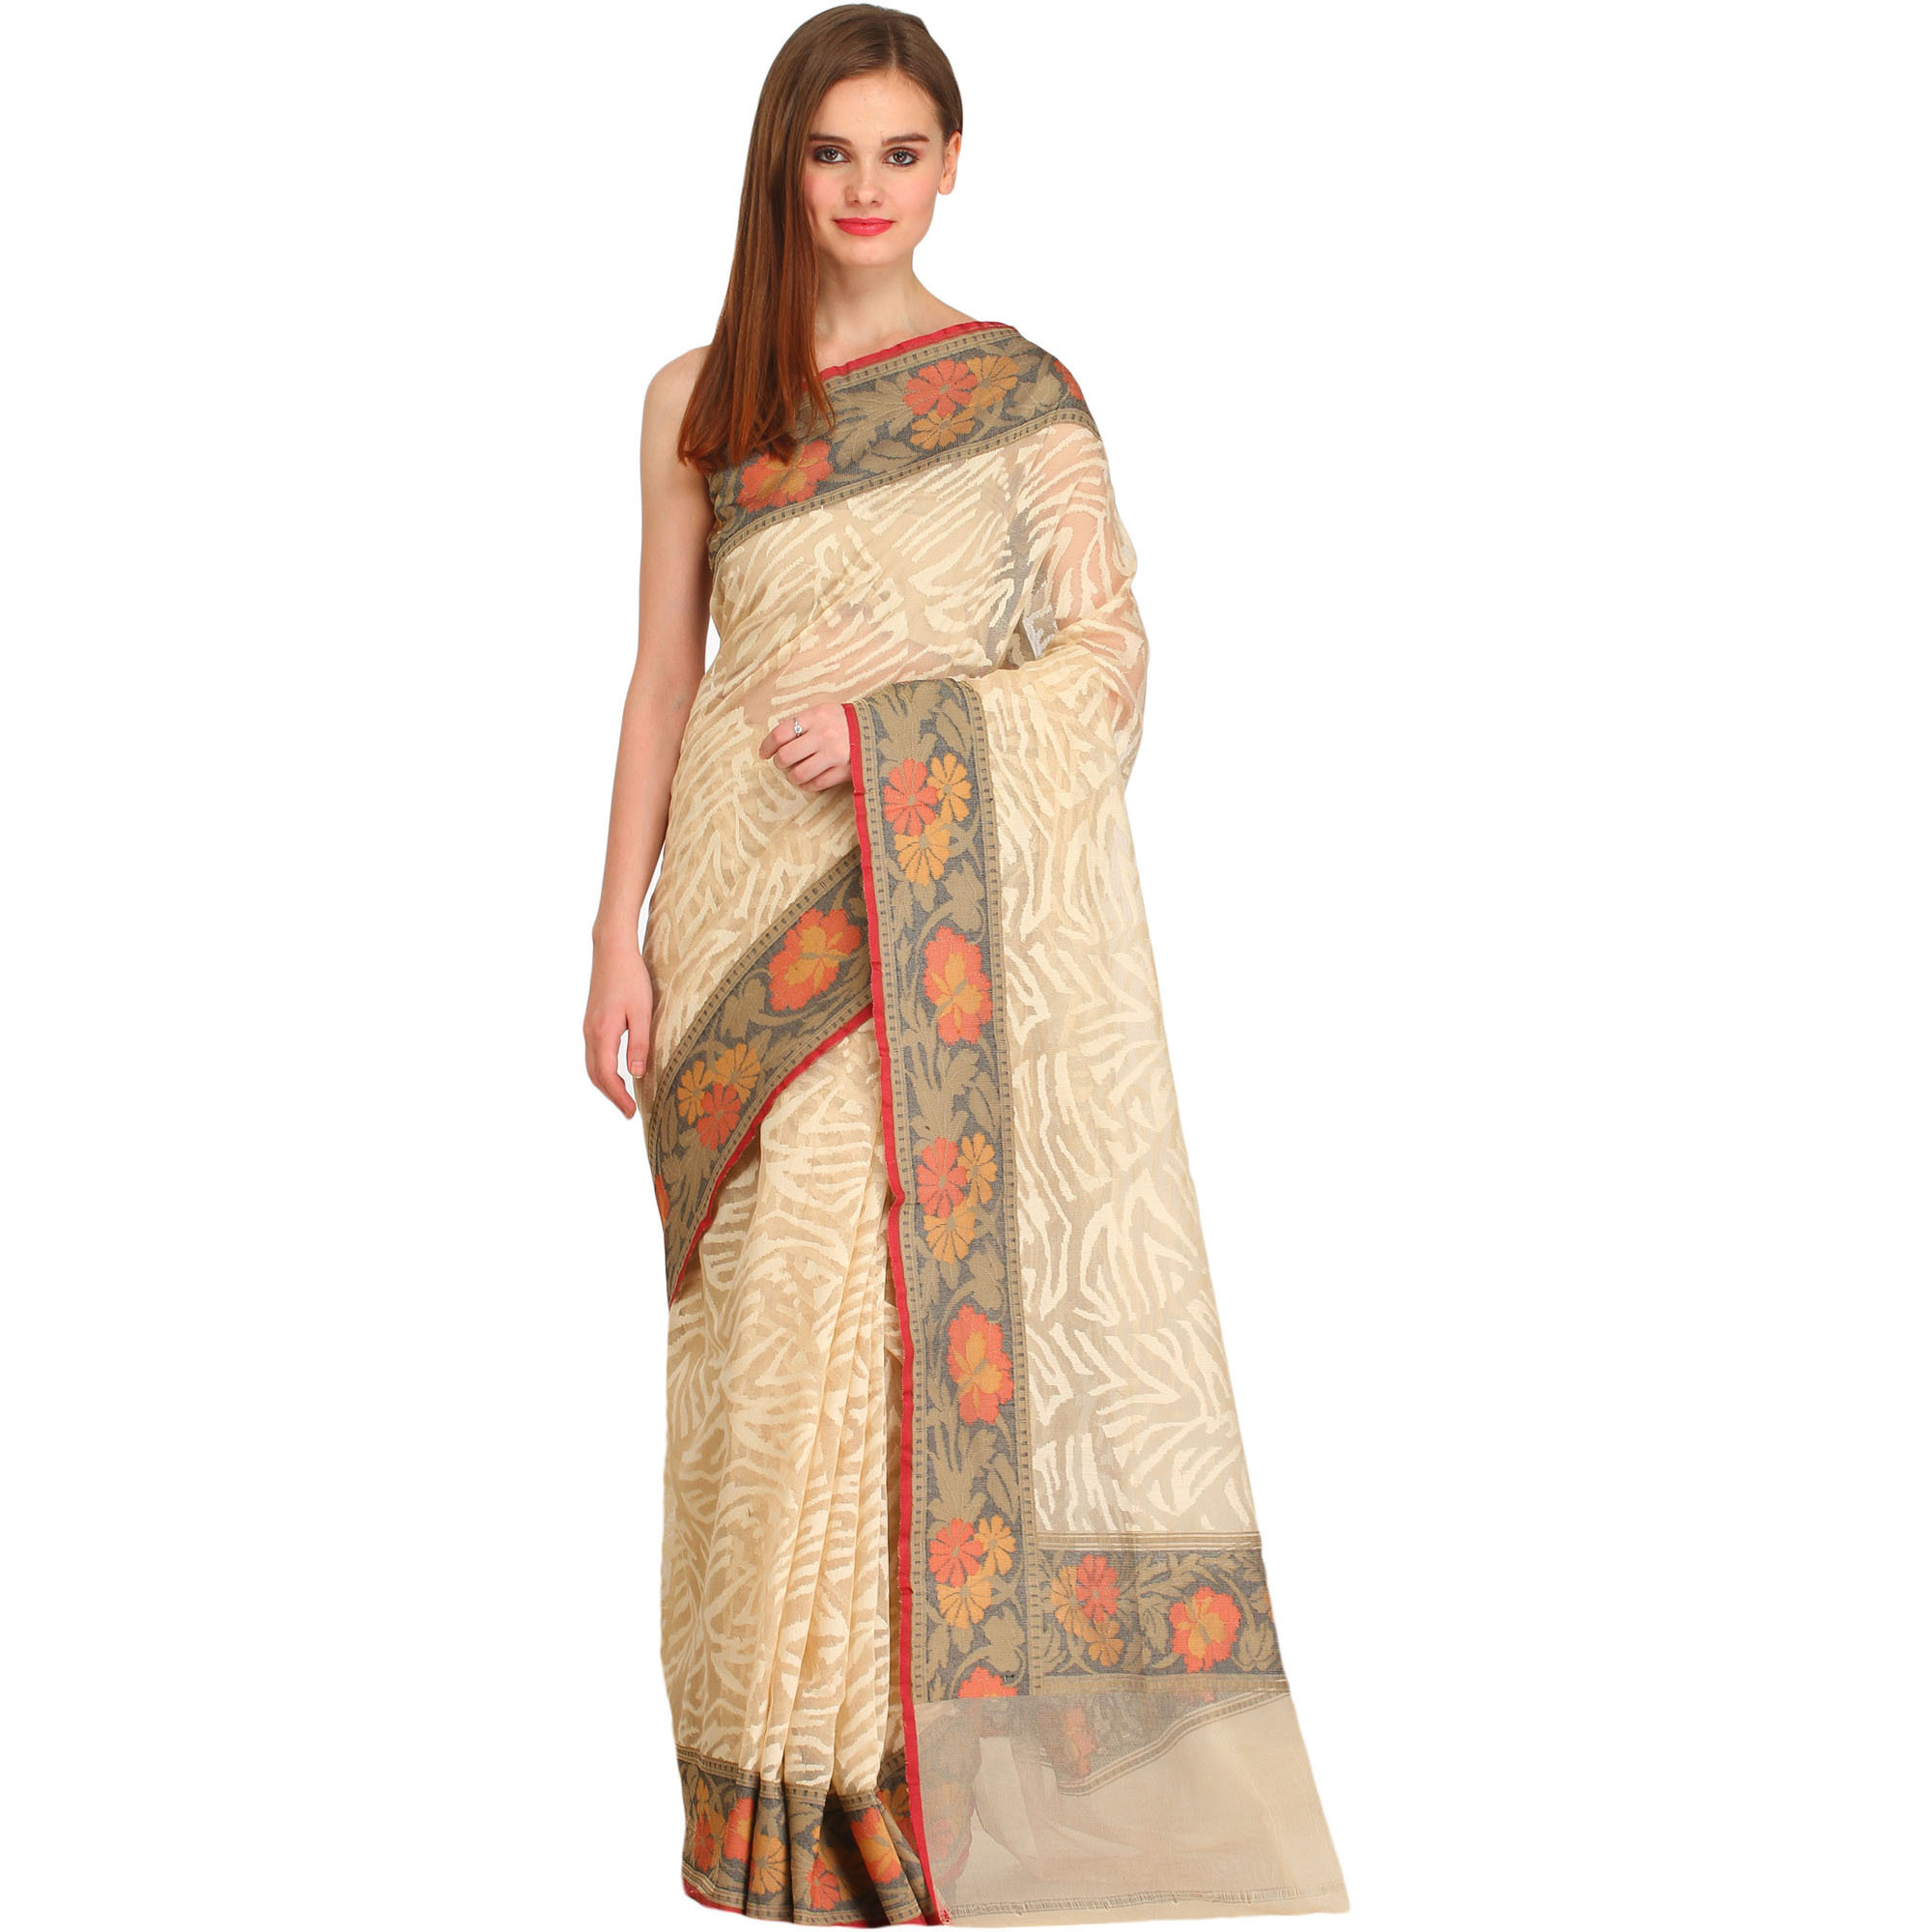 Cream Self-Weave Net Sari from Banaras with Hand-Woven Flowers on Border